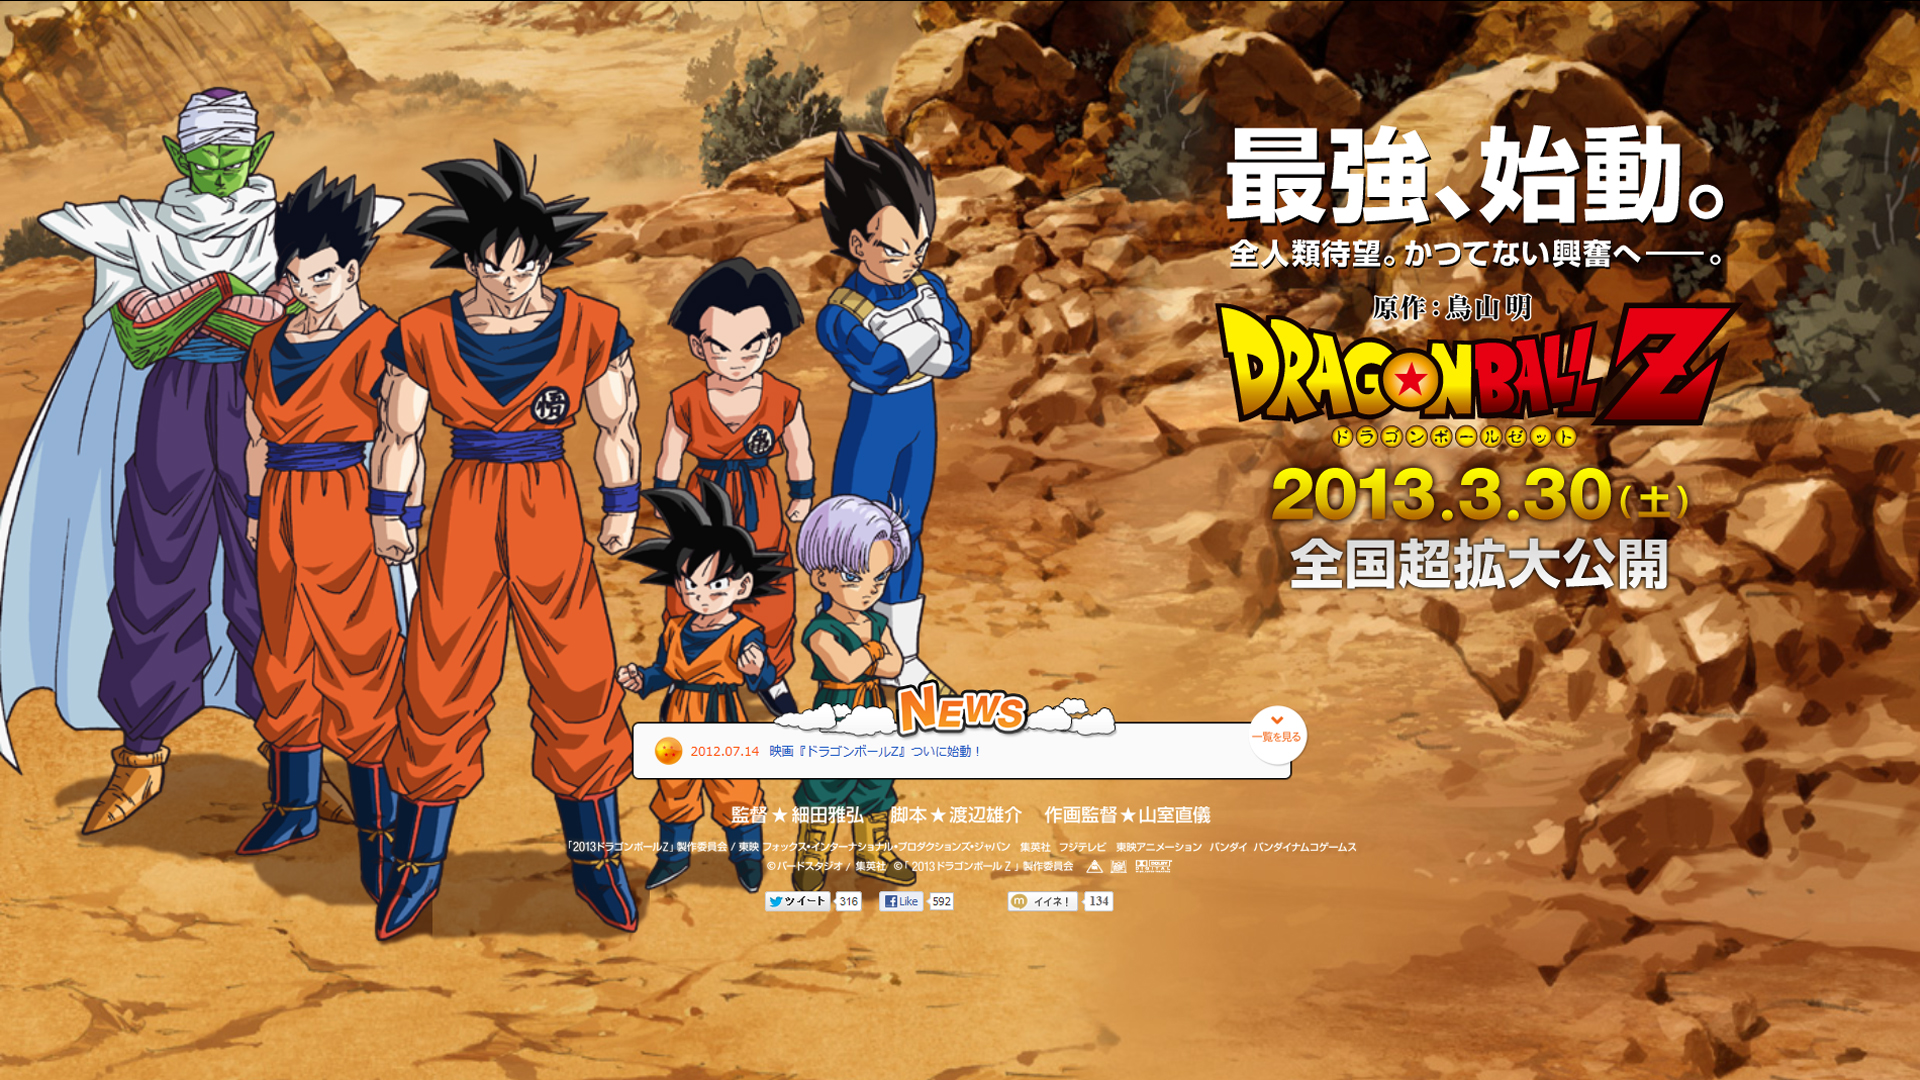 dragon ball z site